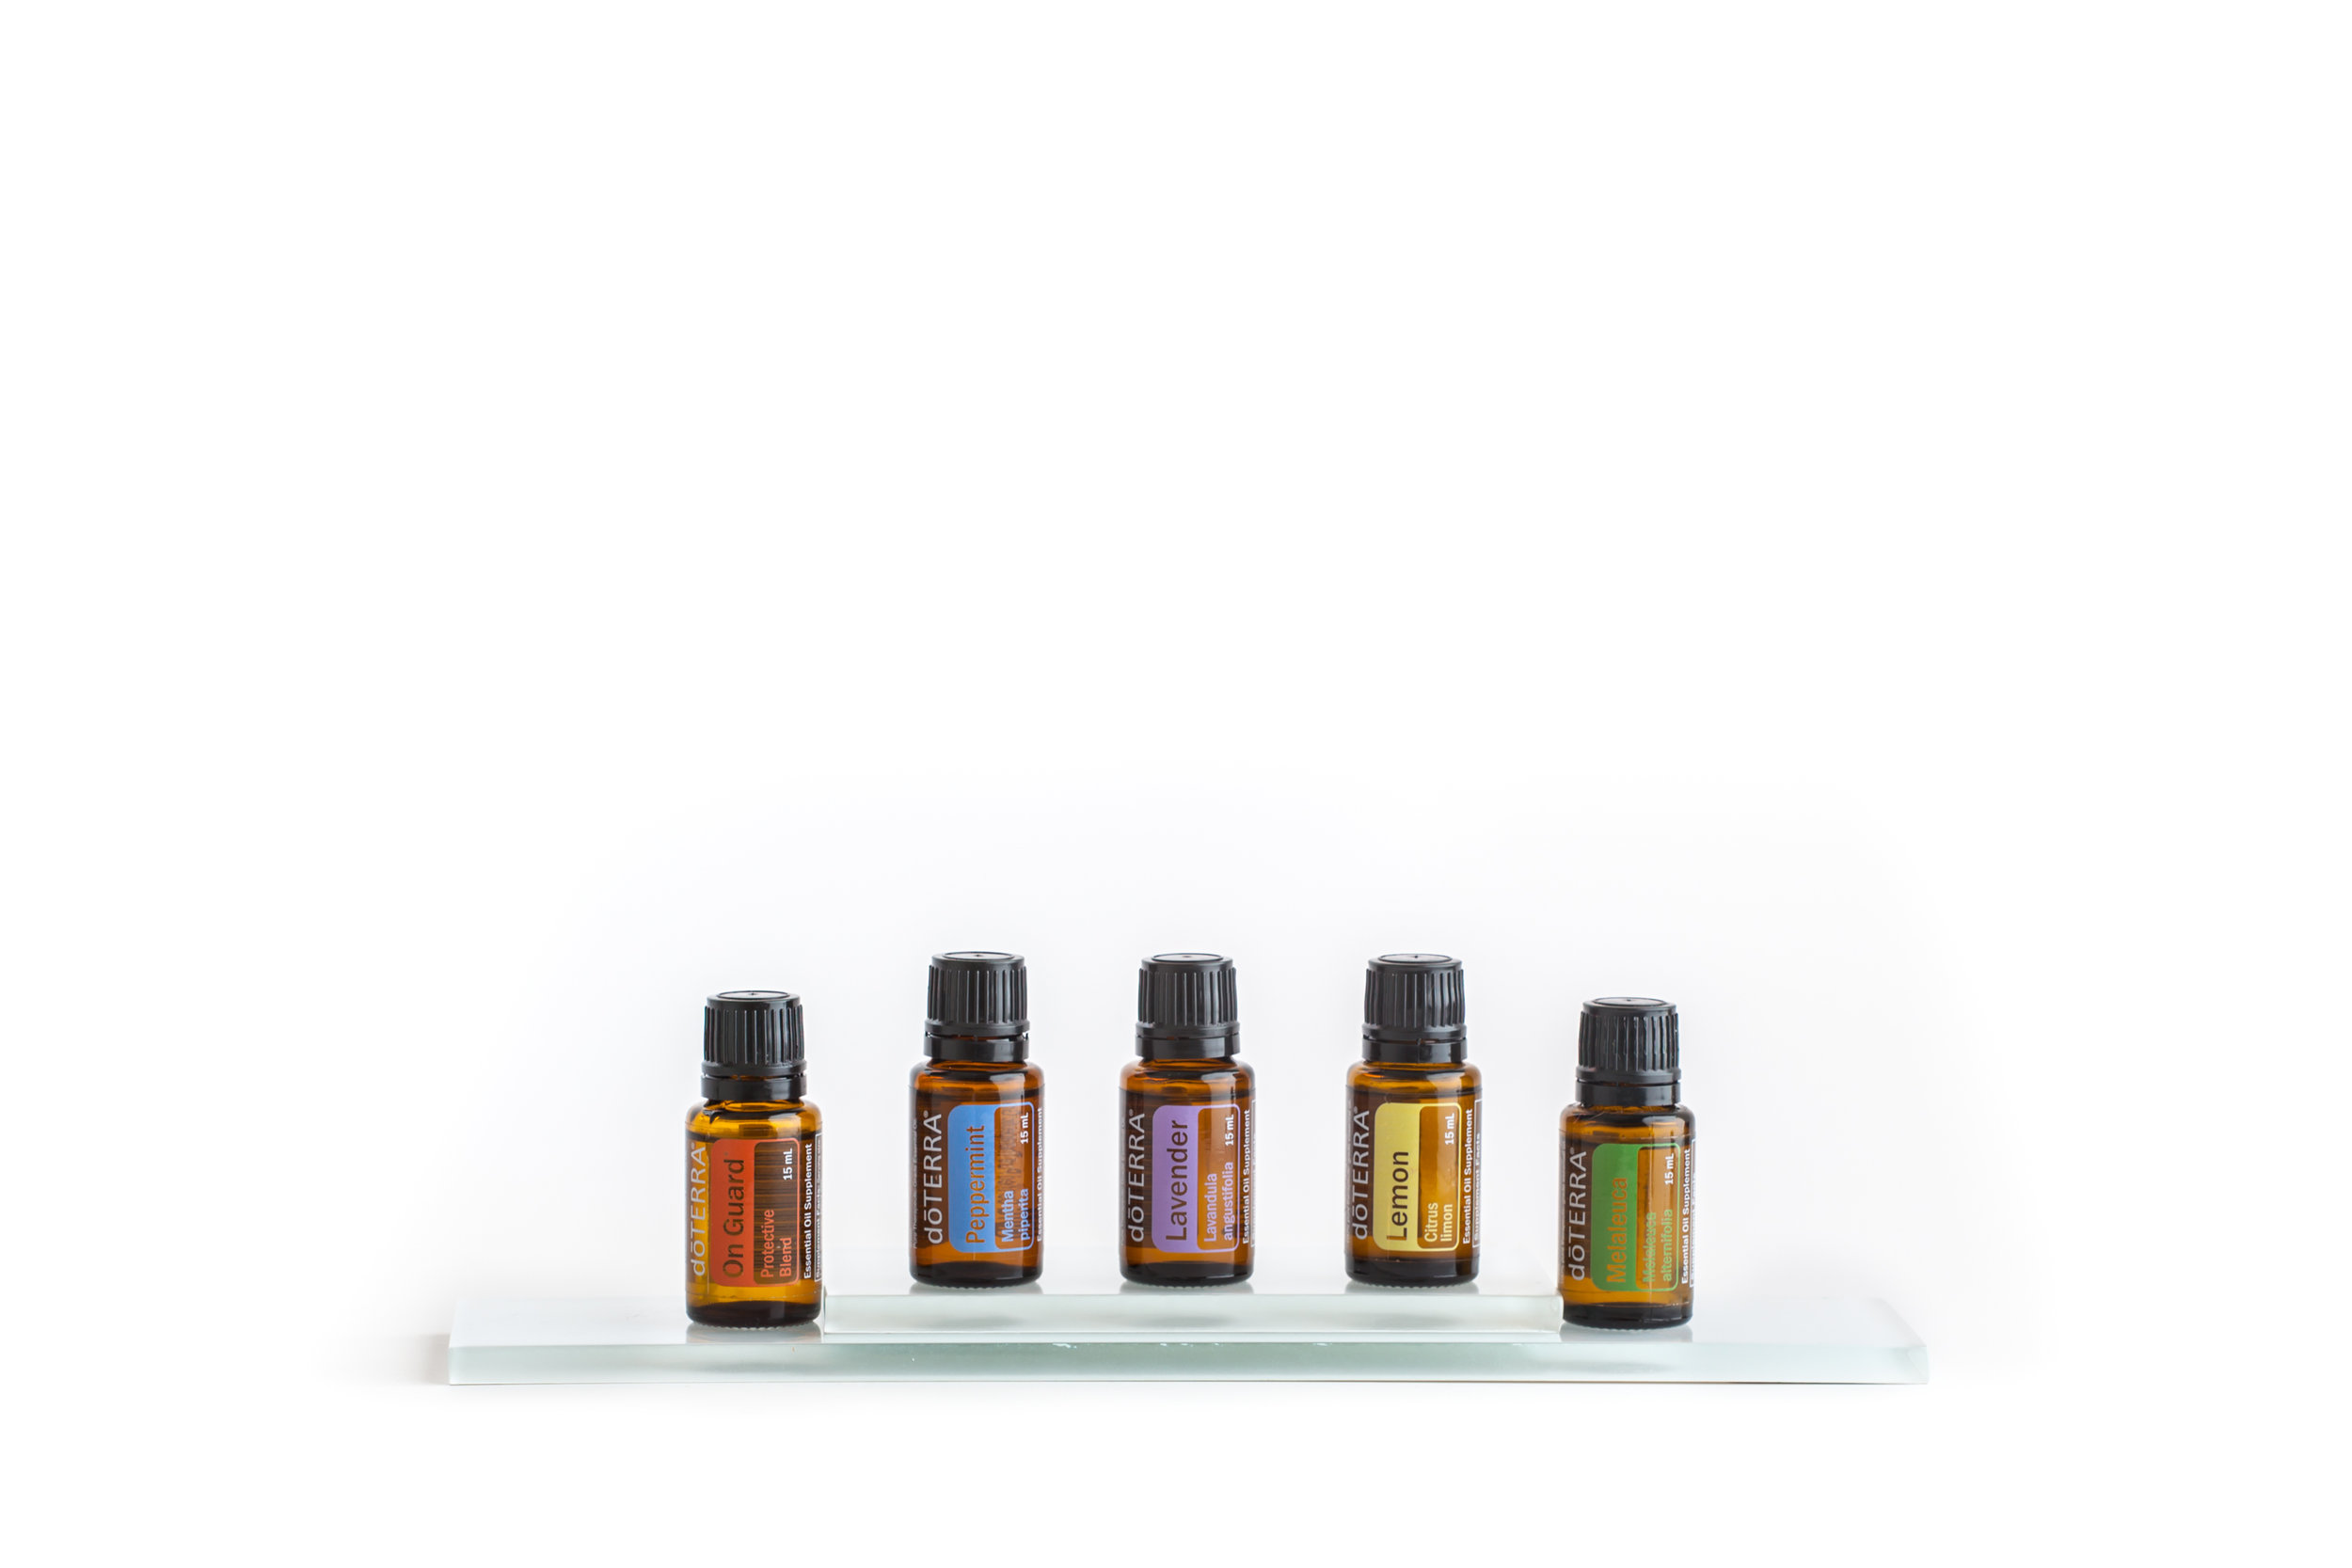 Essential Oils 101 - Why essential oils are apart of my health.